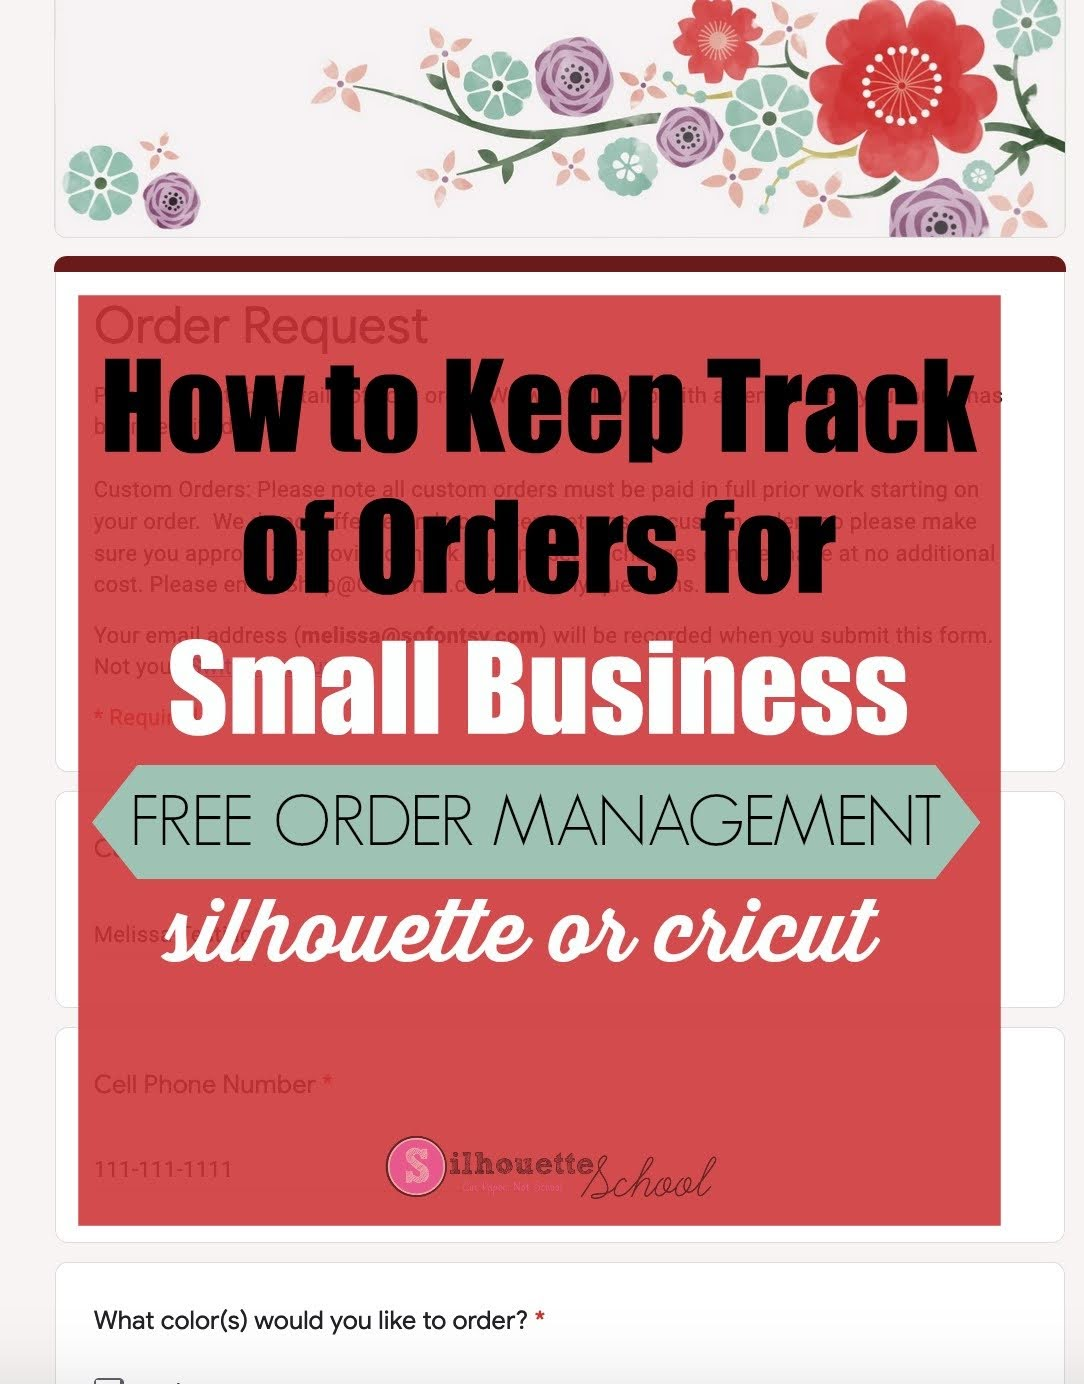 How To Keep Track Of Orders For Small Business Silhouette Or Cricut Silhouette School